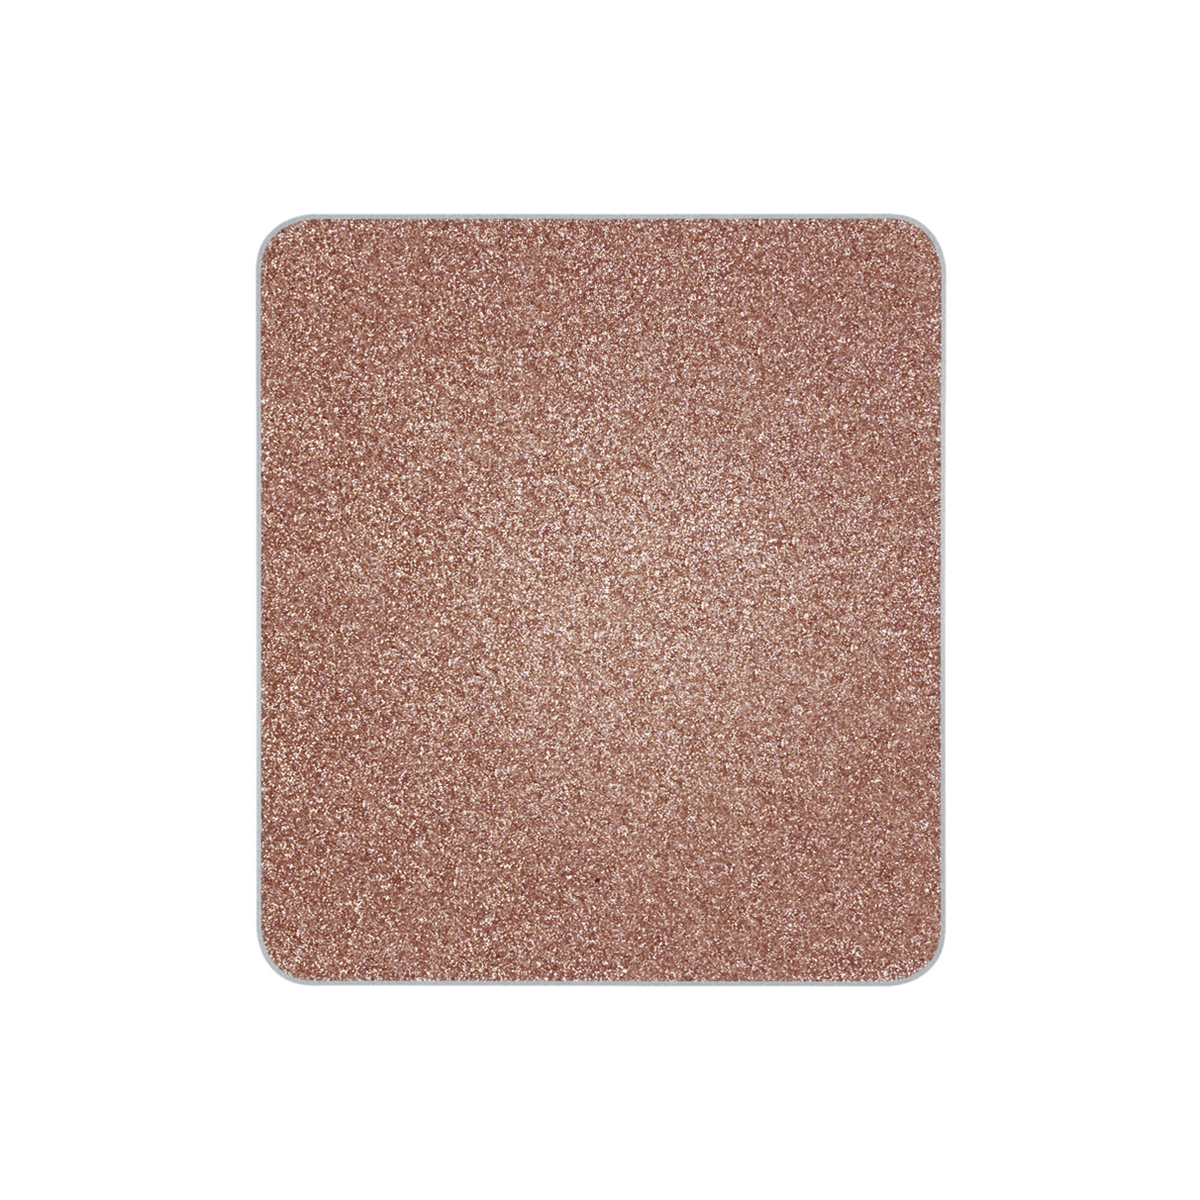 Iridescent-538 Pearly Gray Beige